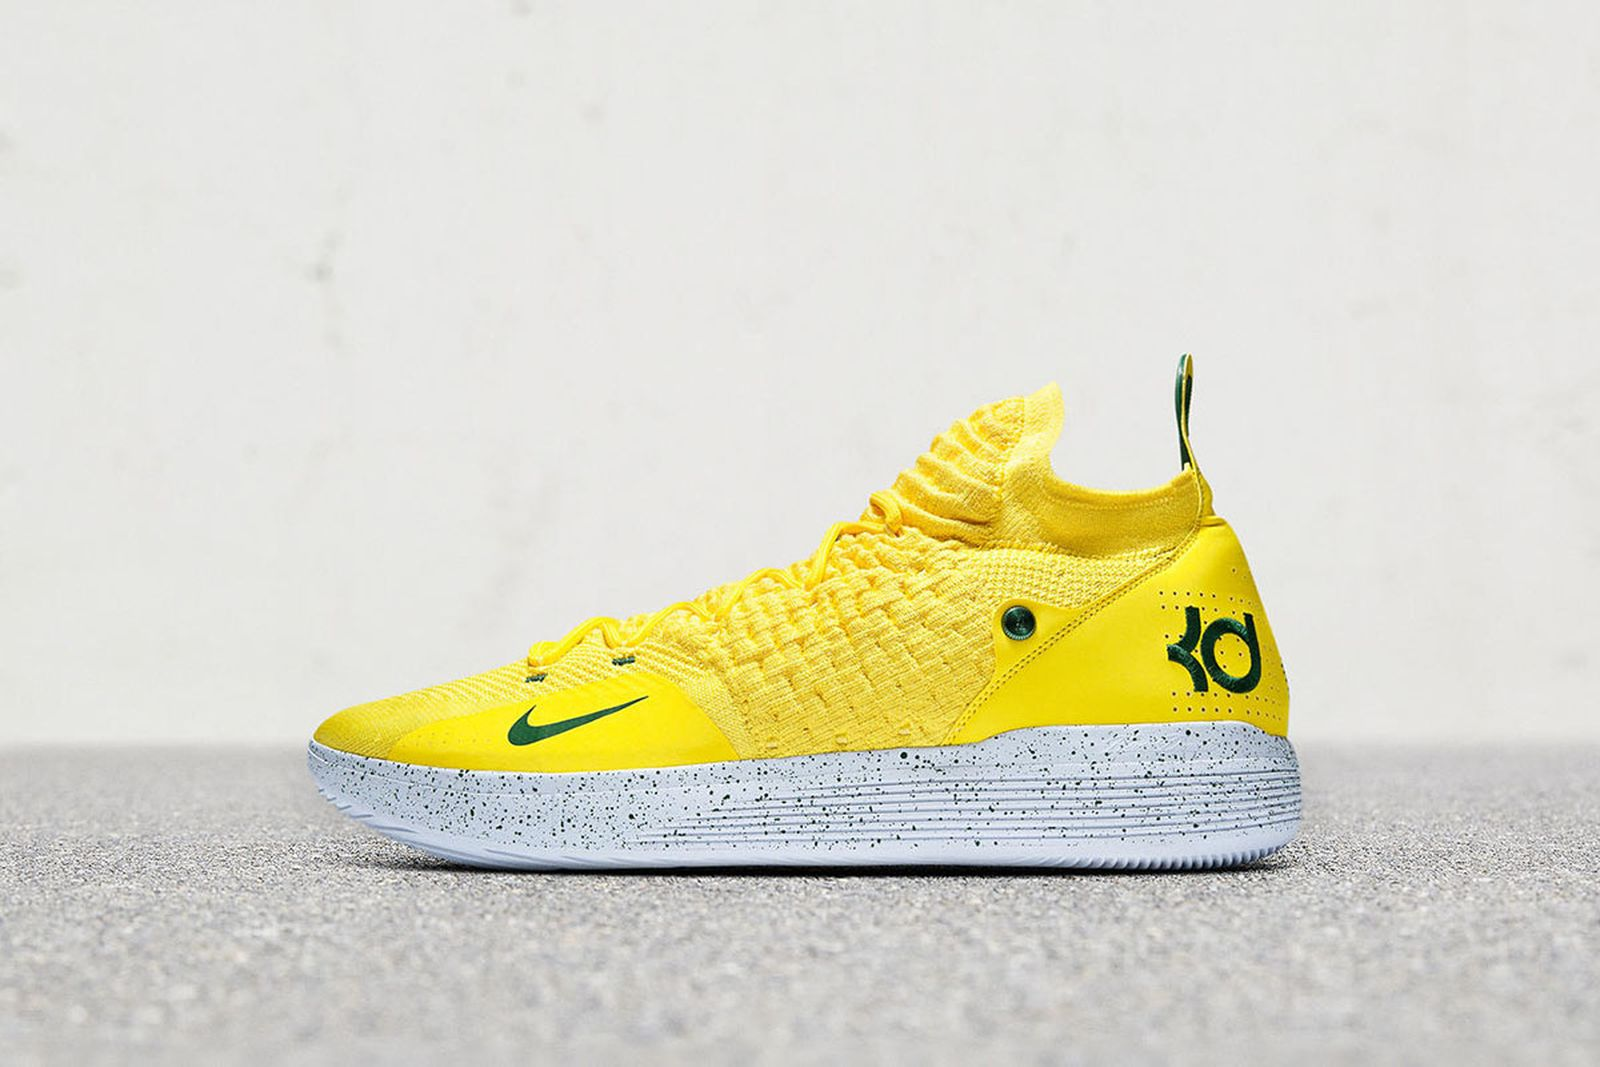 nike zoom kd 11 seattle blends kevin durant